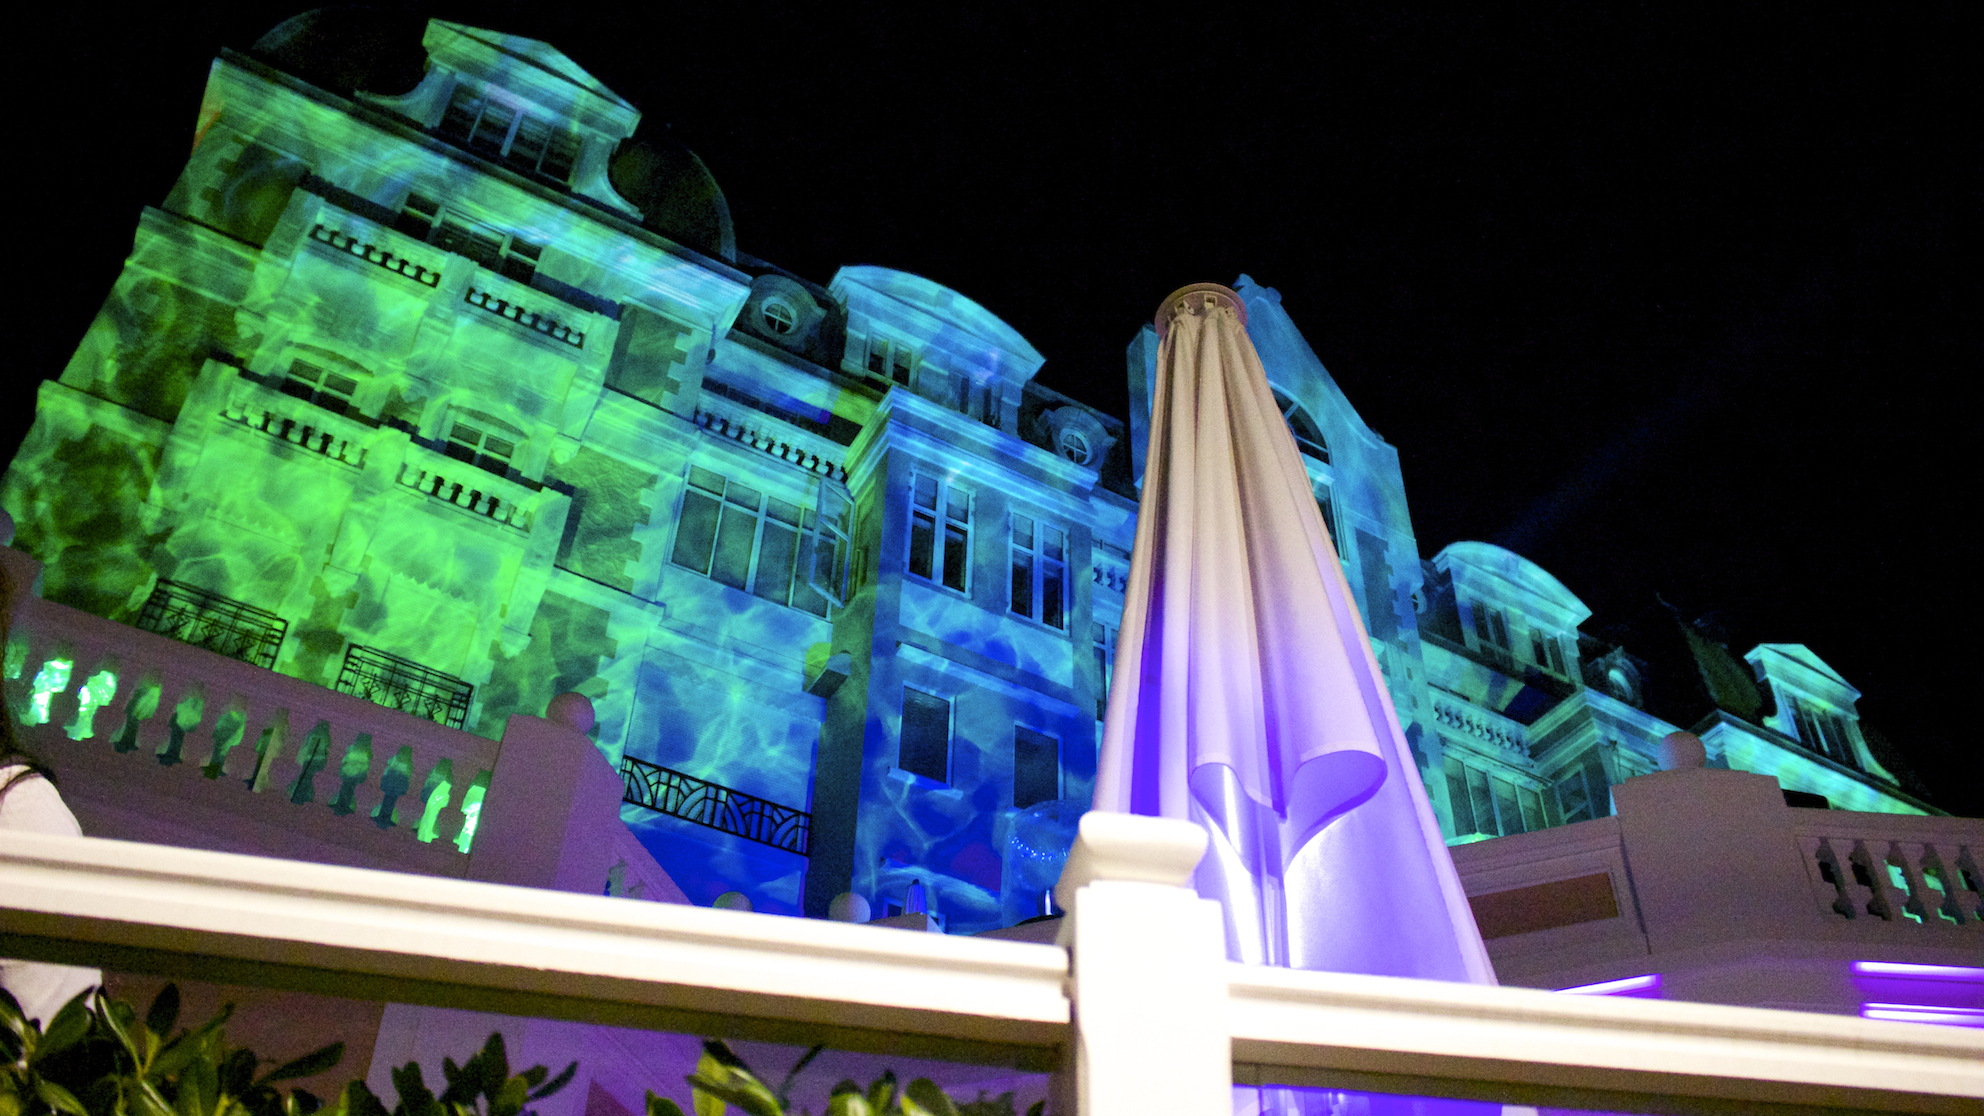 INAUGURATION-GRAND-HOTEL-saint-jean-de-luz-agence-evenementielle-pays-basque-le-cercle-evenements- 549